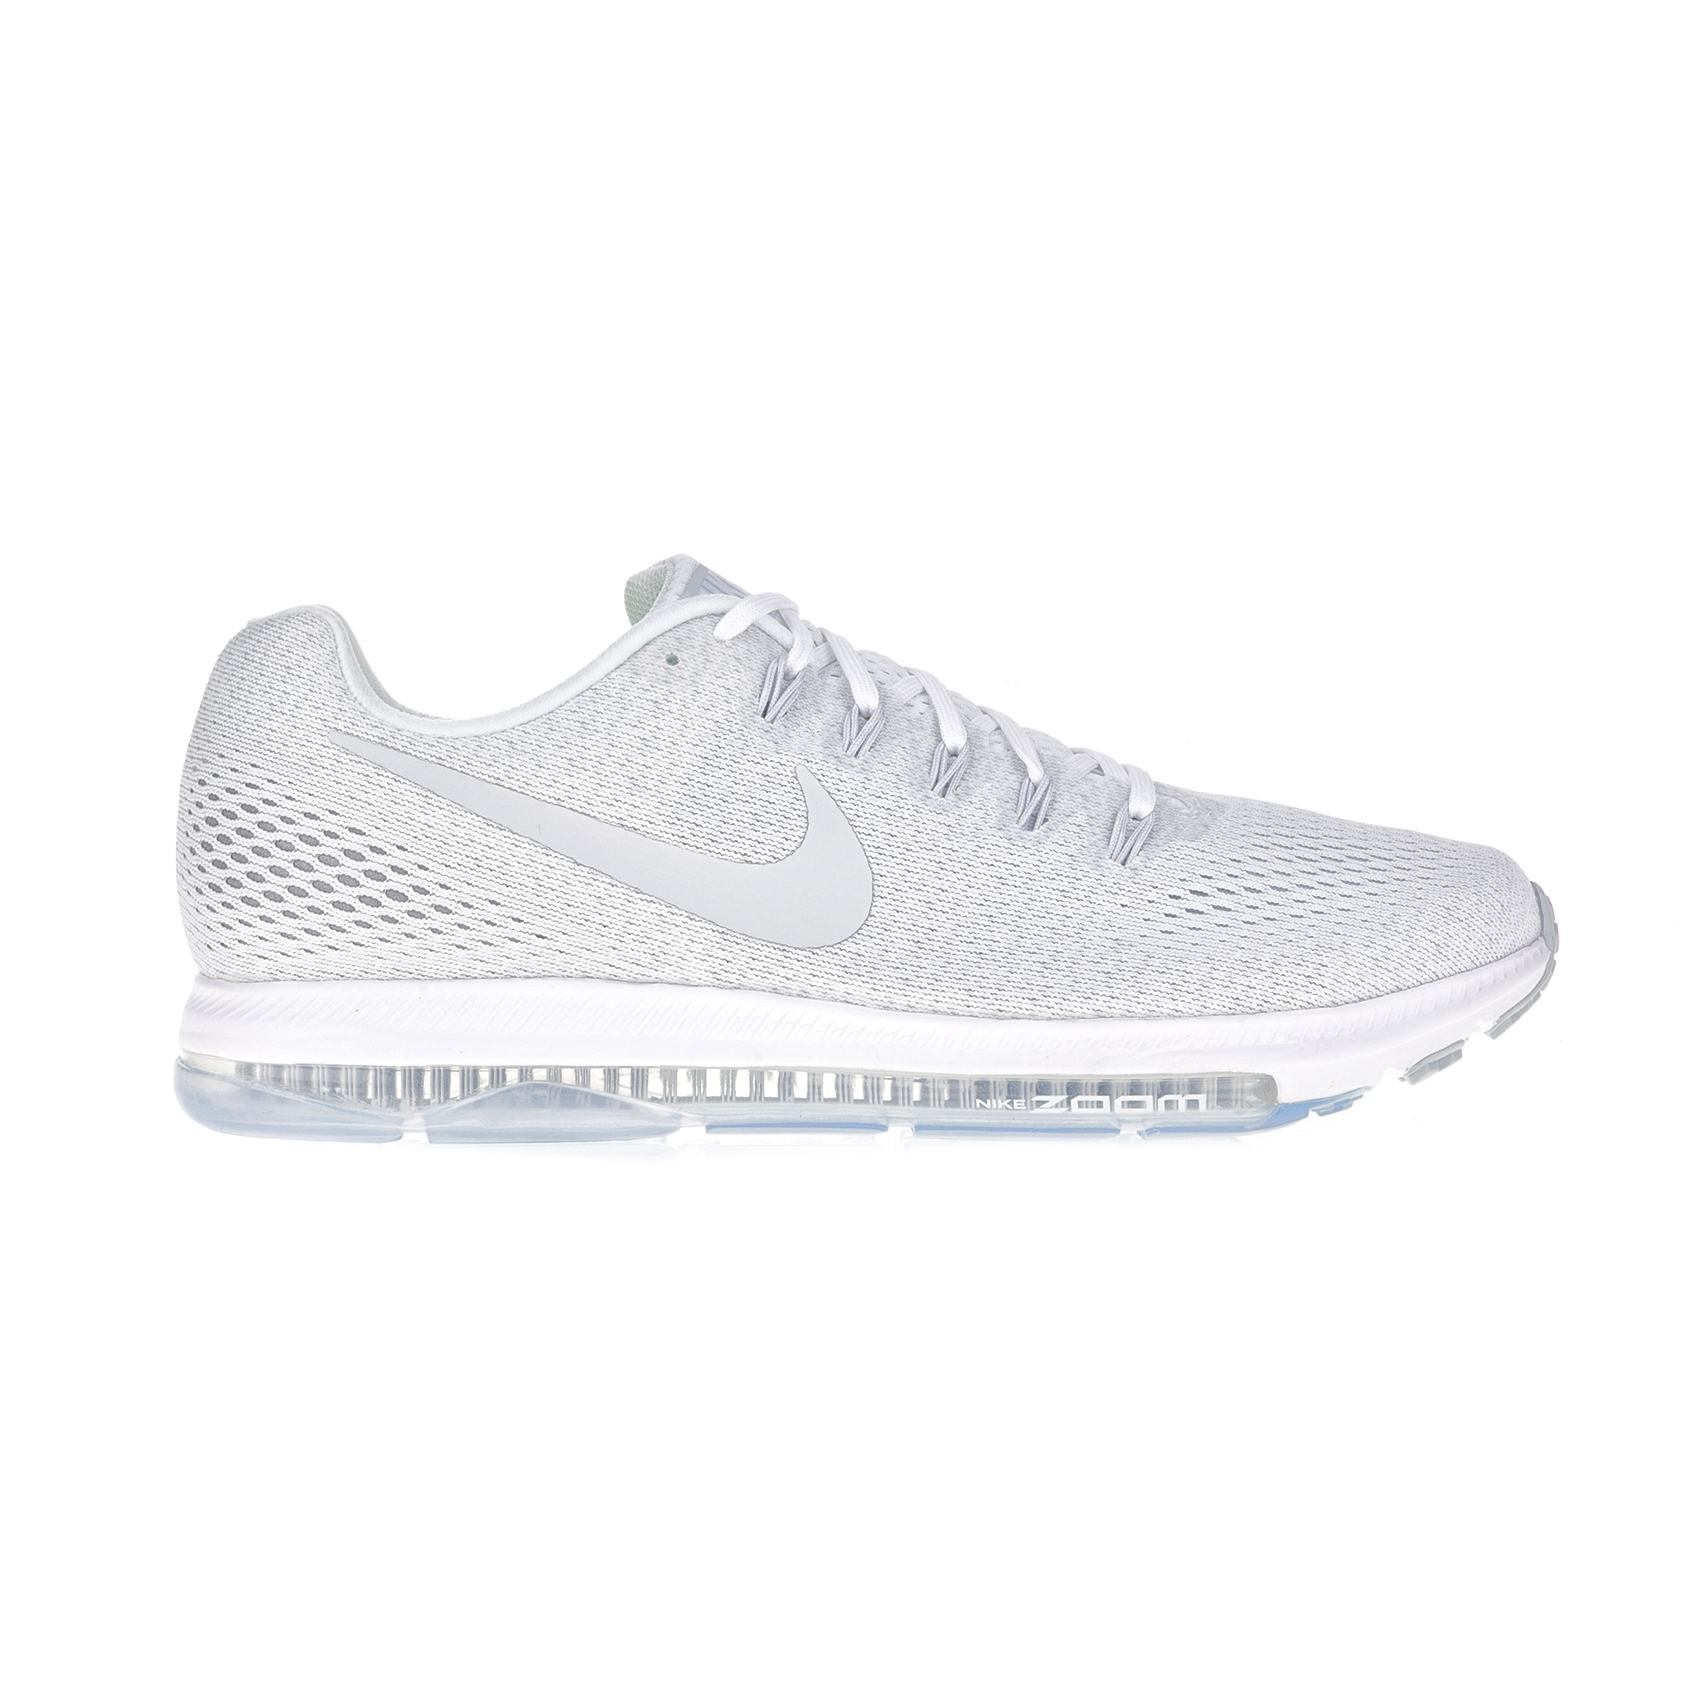 NIKE – Ανδρικά αθλητικά παπούτσια NIKE ZOOM ALL OUT LOW λευκά